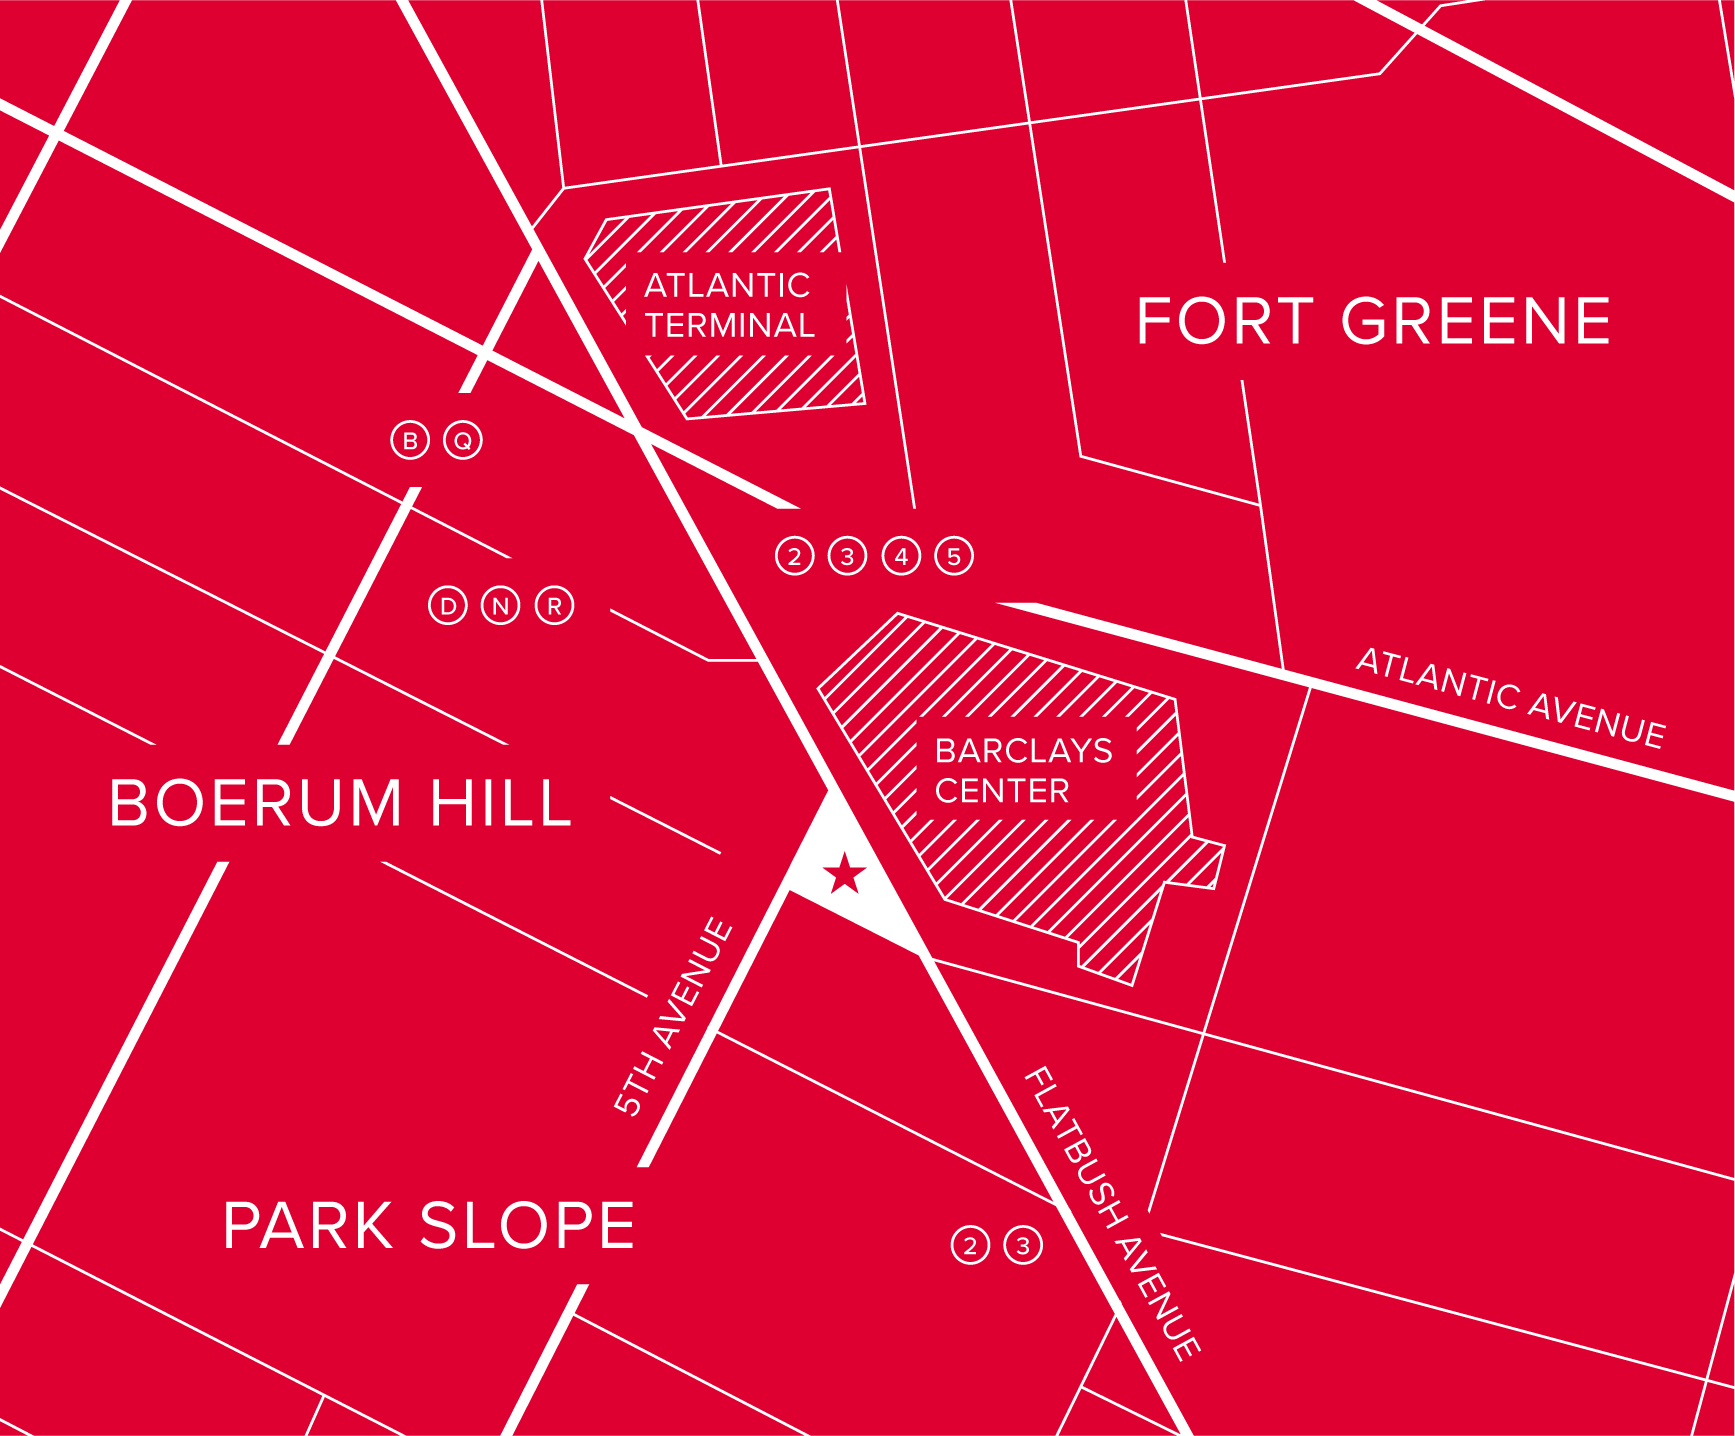 redsky_182flatbush_web_map_02